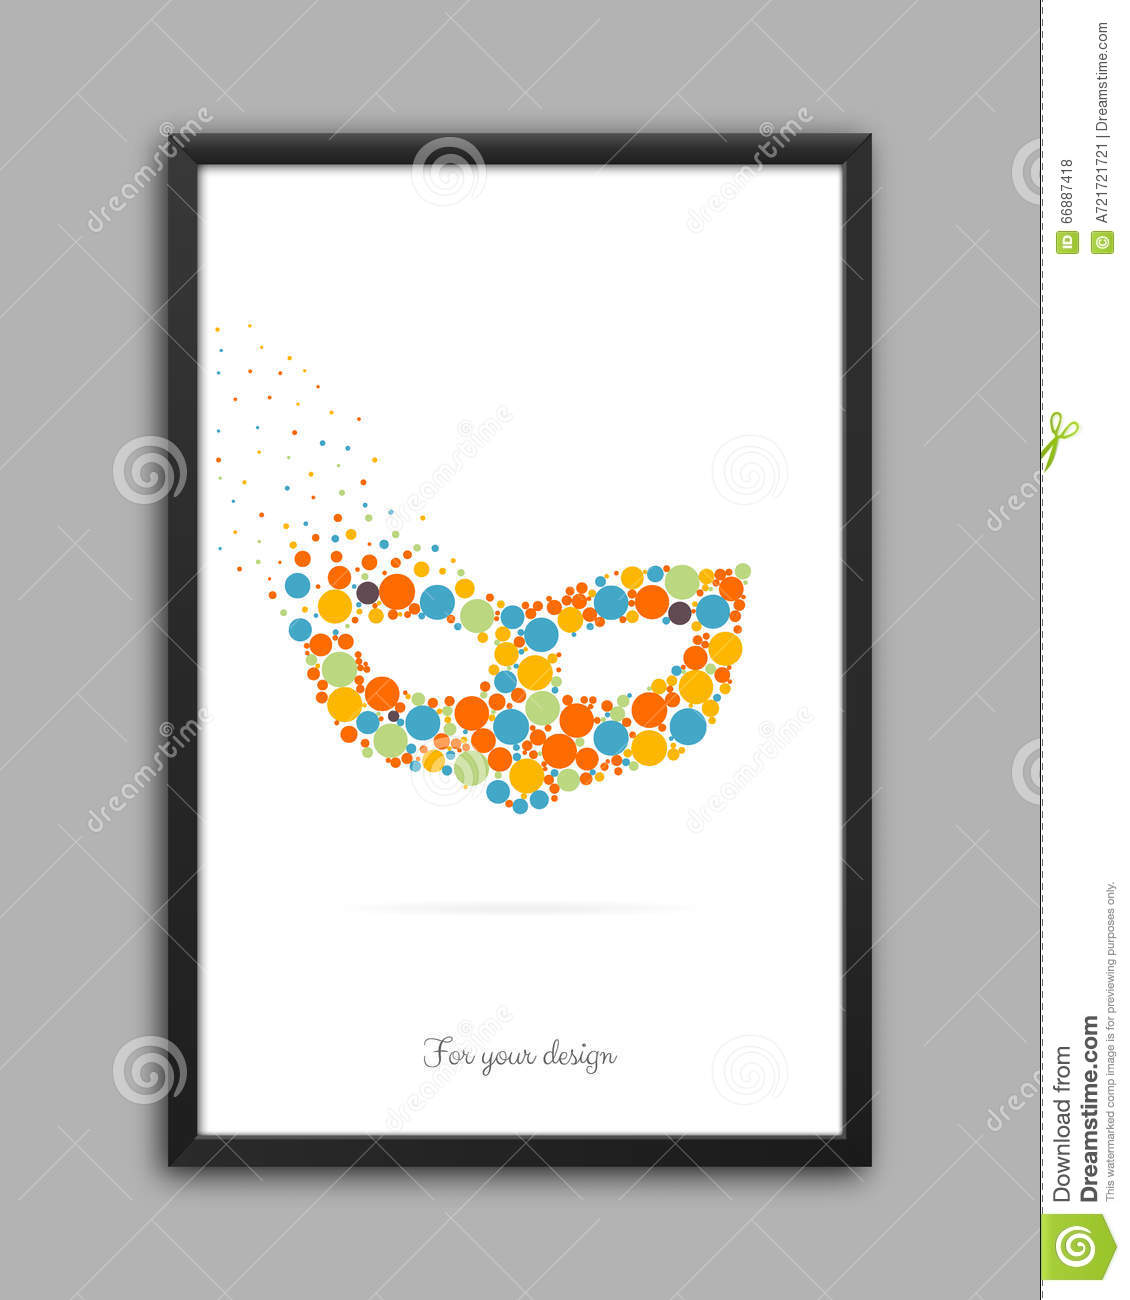 Abstract Creative concept vector logo icon of mask for Web and Mobile Applications isolated on background. Art